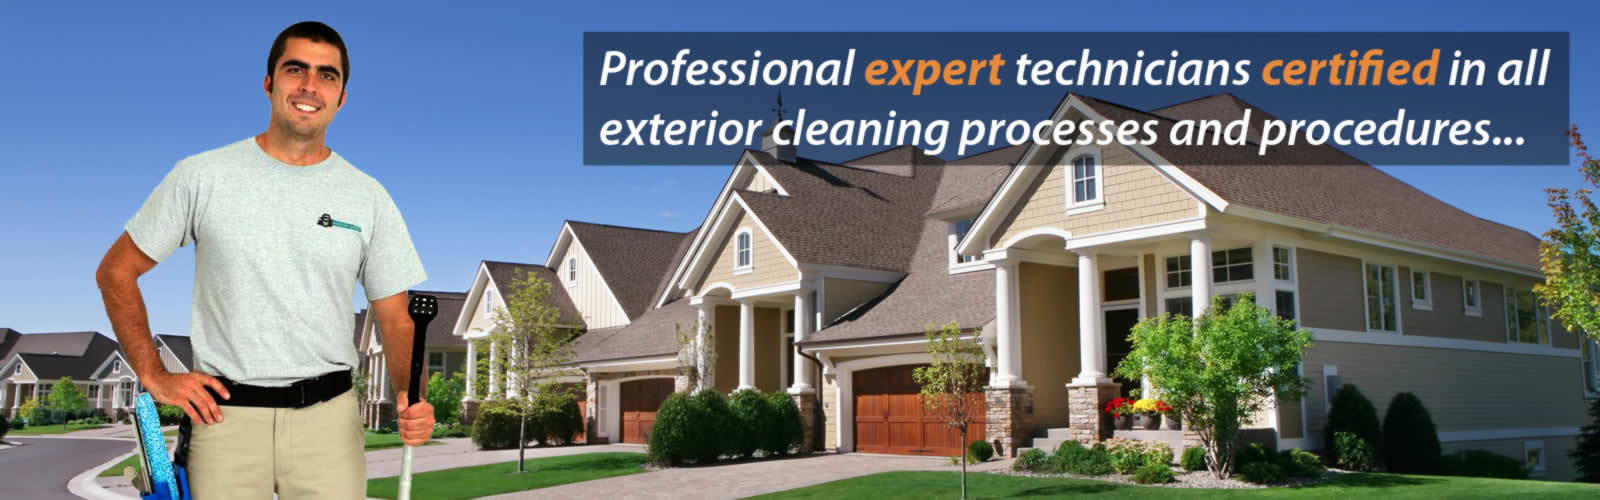 Window Gang | Professional Expert Technicians